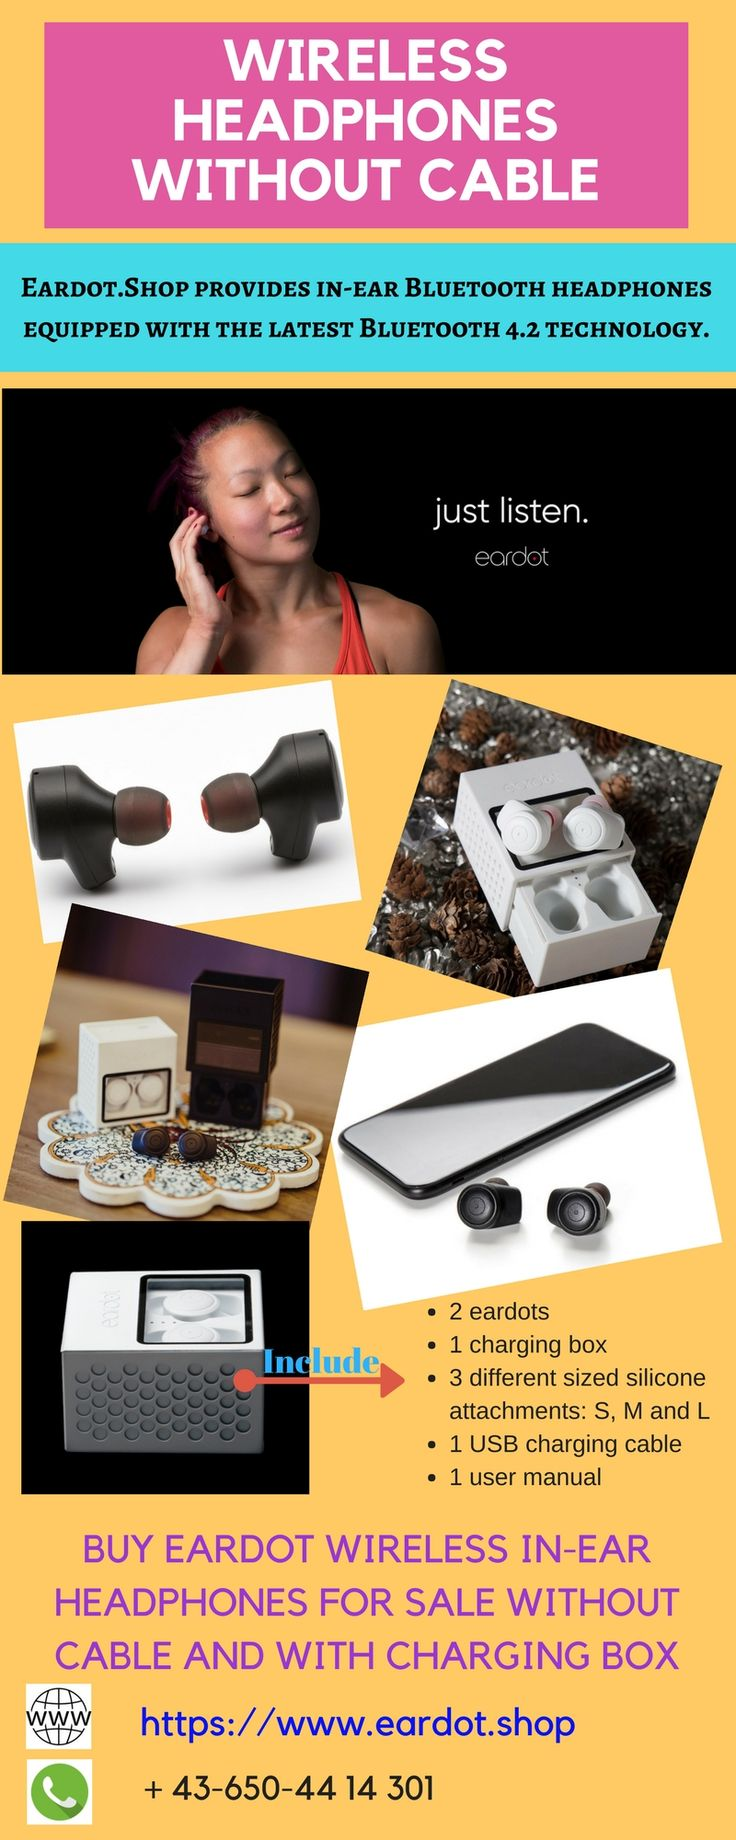 Buy best selling wireless in-ear Bluetooth headphones online without cable available in market only on https://www.eardot.shop/. Equipped with latest Bluetooth 4.2 Technology and unique design we provide in-ear headphones with excellent connectivity. #WirelessHeadphonesWithoutCable